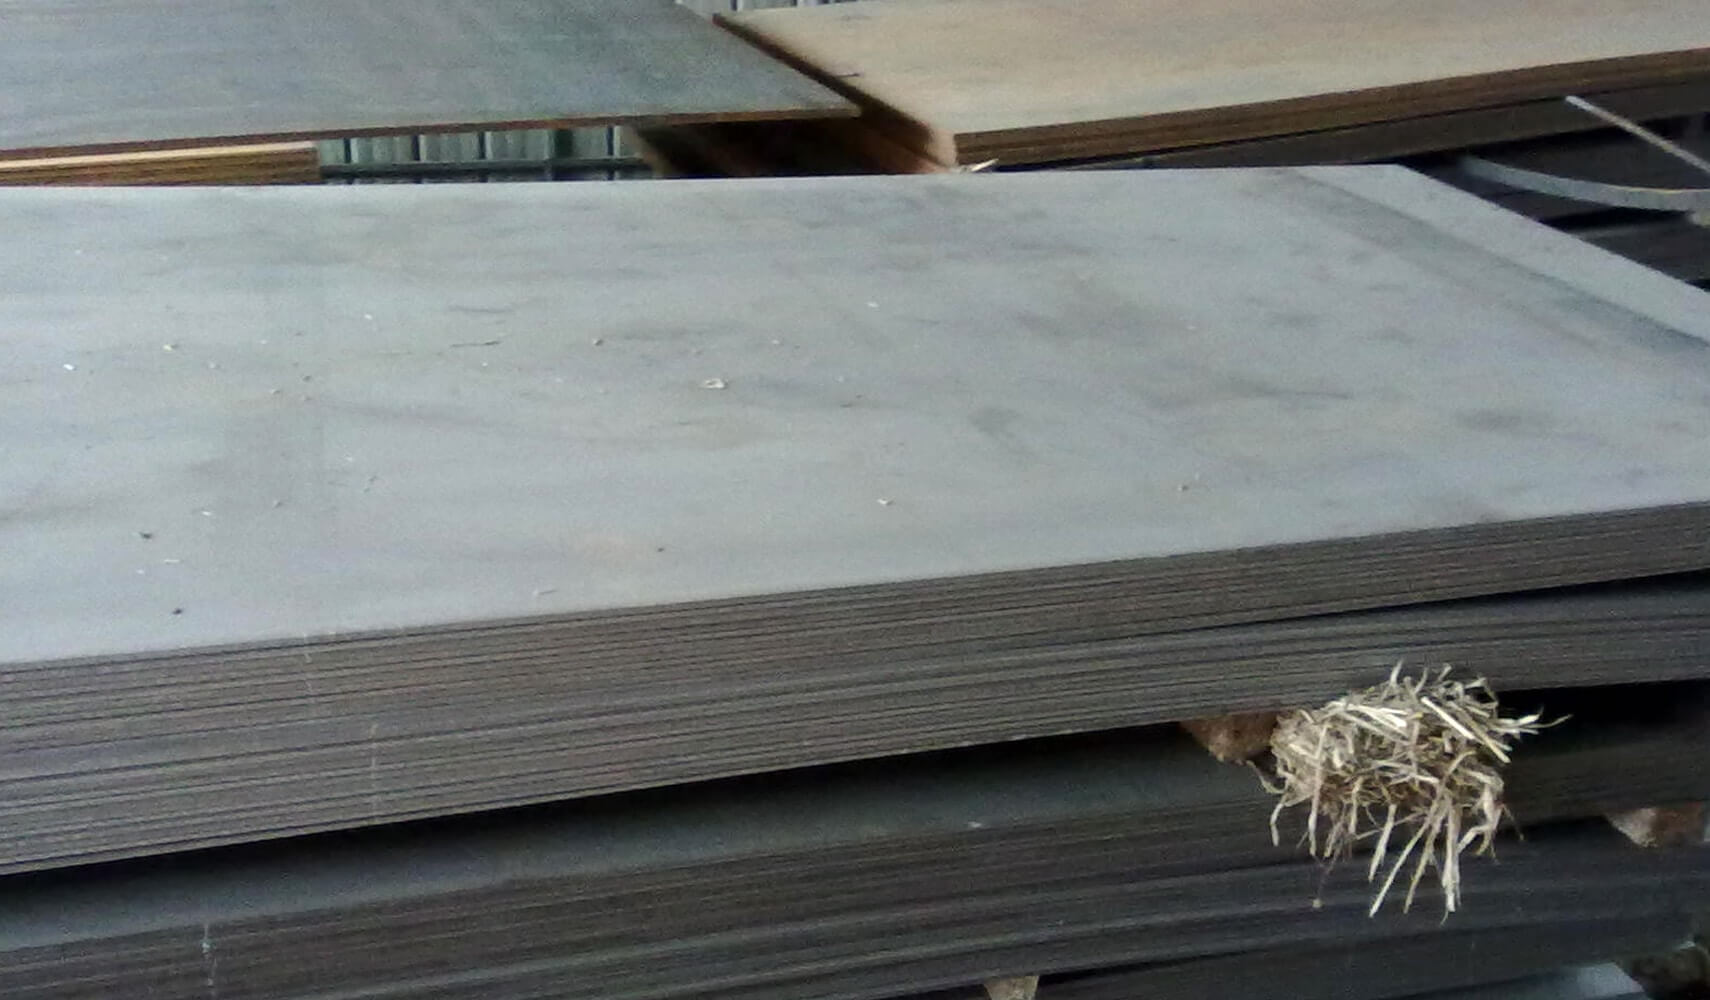 ASTM A516 Grade 70 NACE MR0103 / MR0175 Carbon Steel Plate